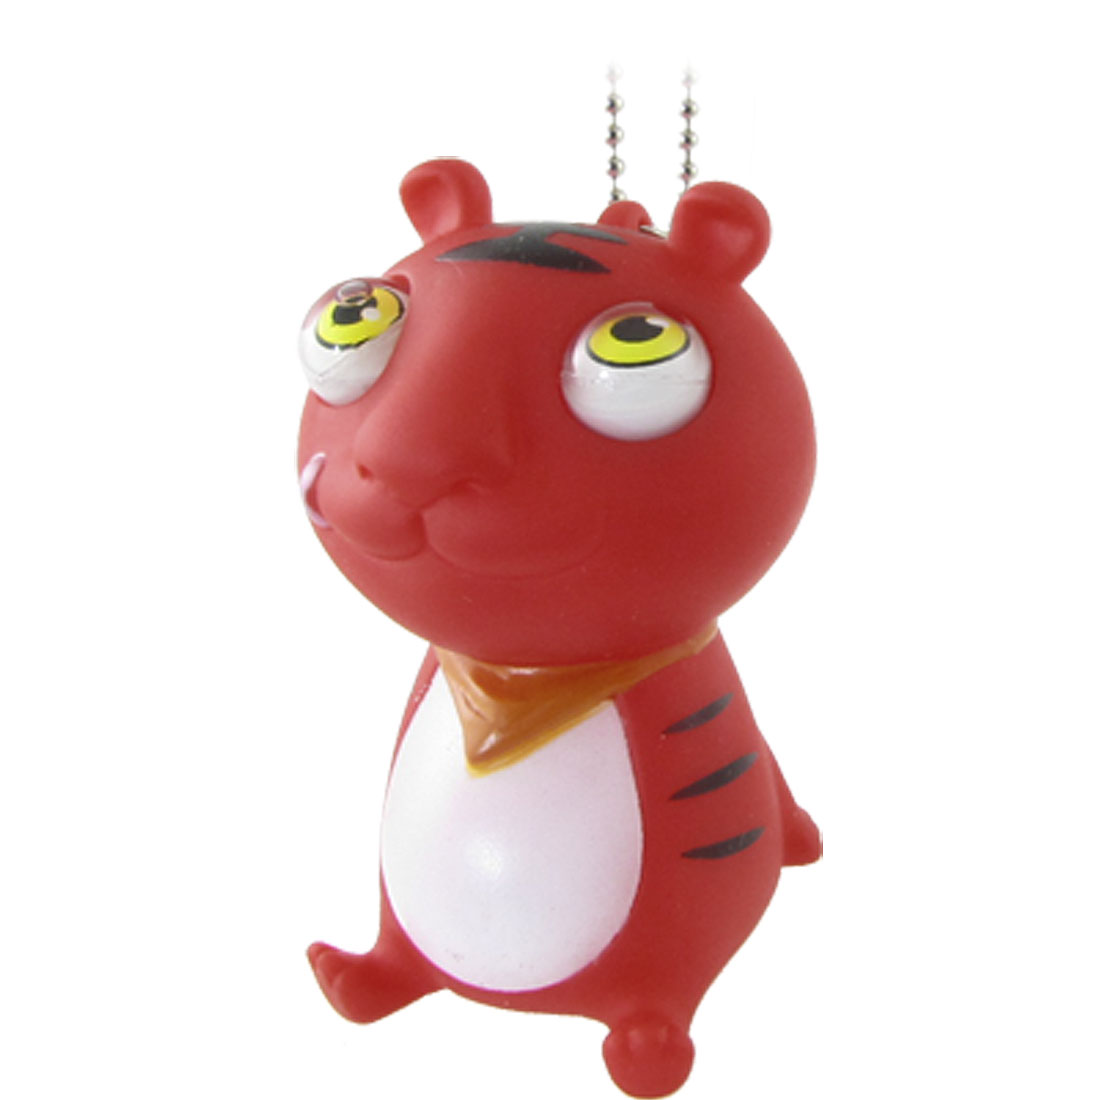 Red Small Tiger Design Stress Reliever Squeeze Pop Out Eyes Toy w Bead Chain